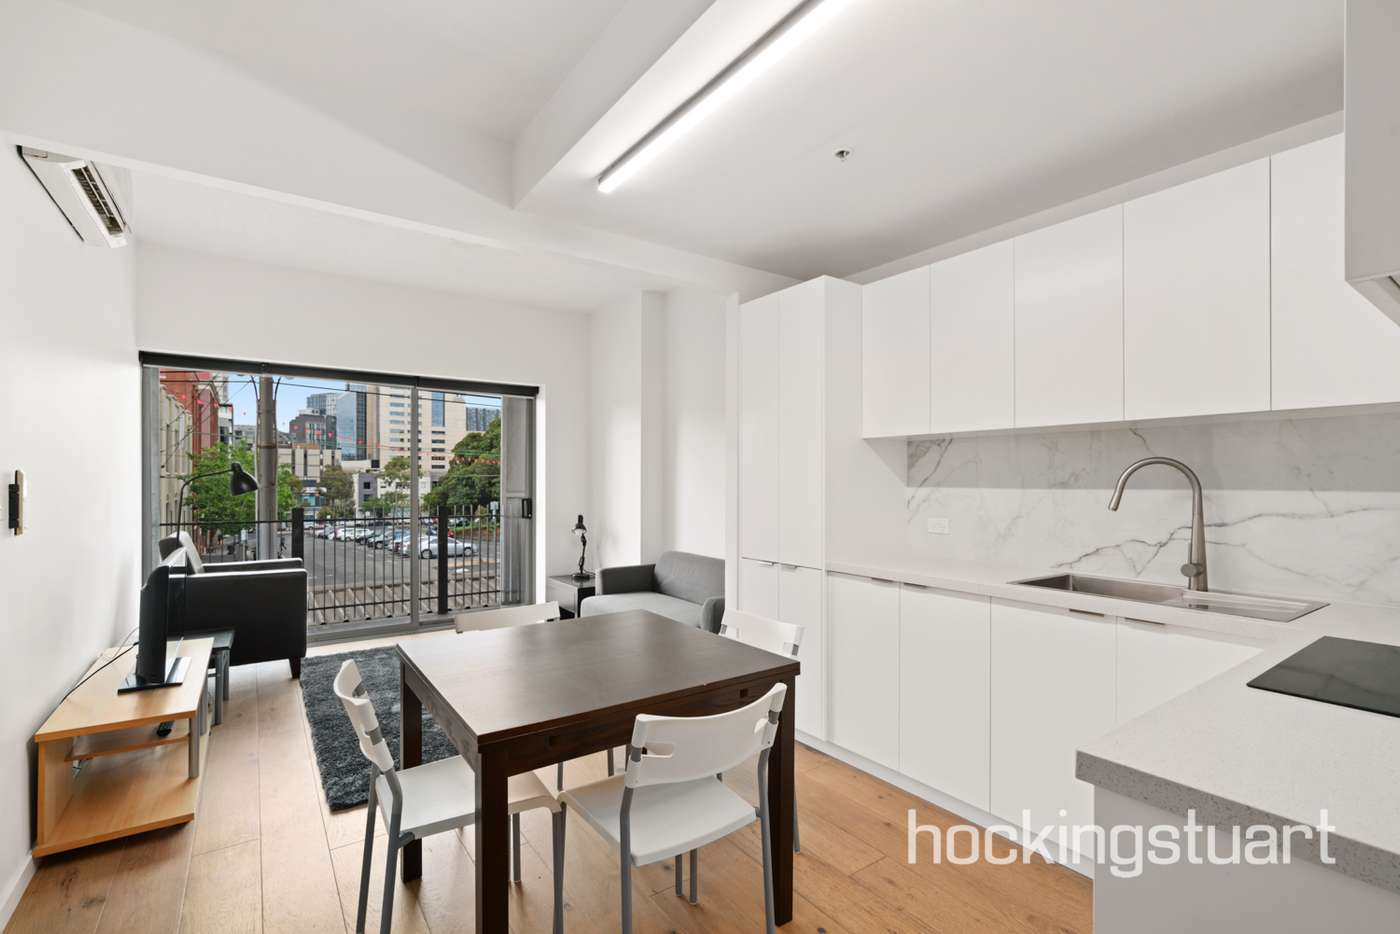 Main view of Homely apartment listing, 103/570 Swanston Street, Carlton, VIC 3053